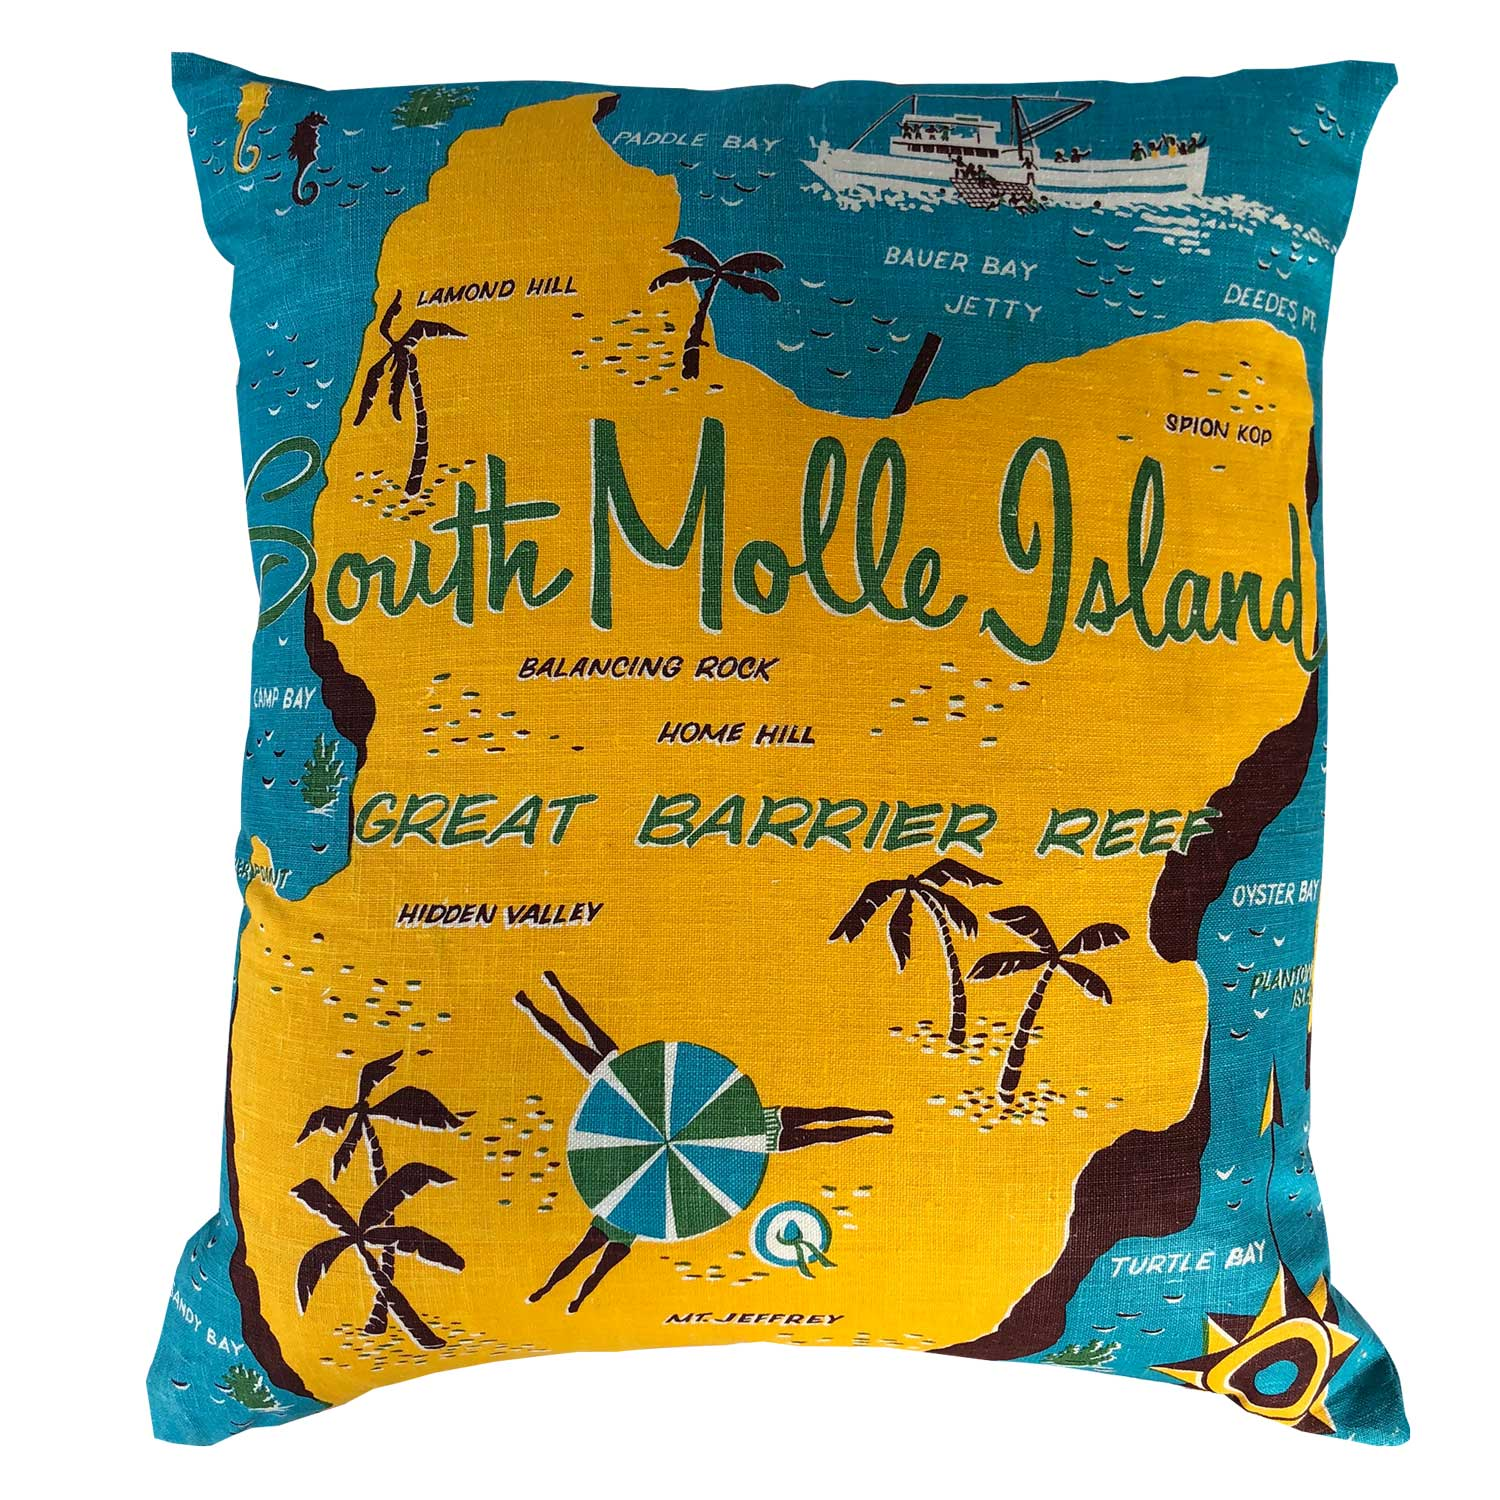 South Molle Island souvenir teatowel cushion cover